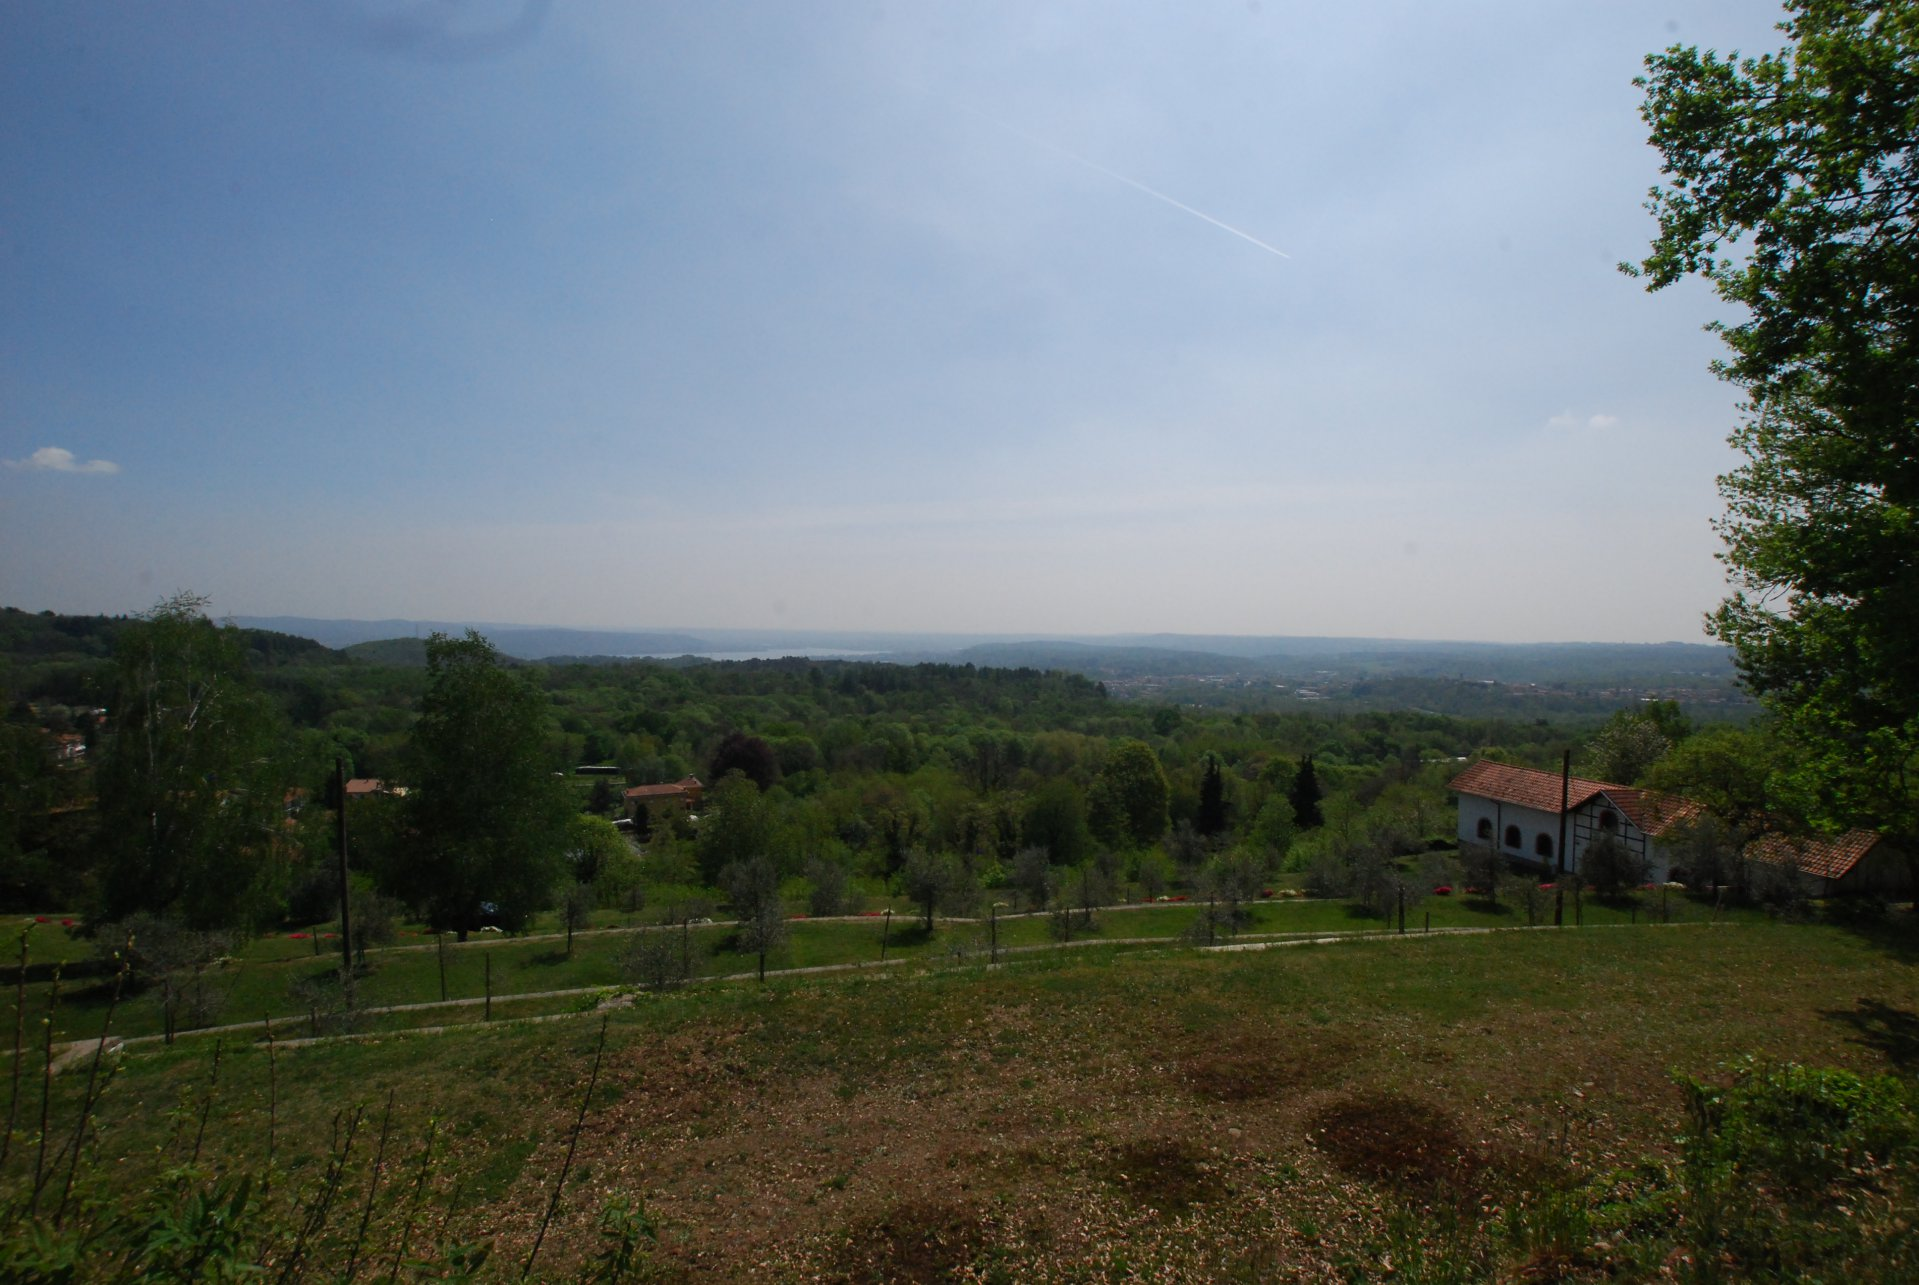 Property for sell on Arona hills